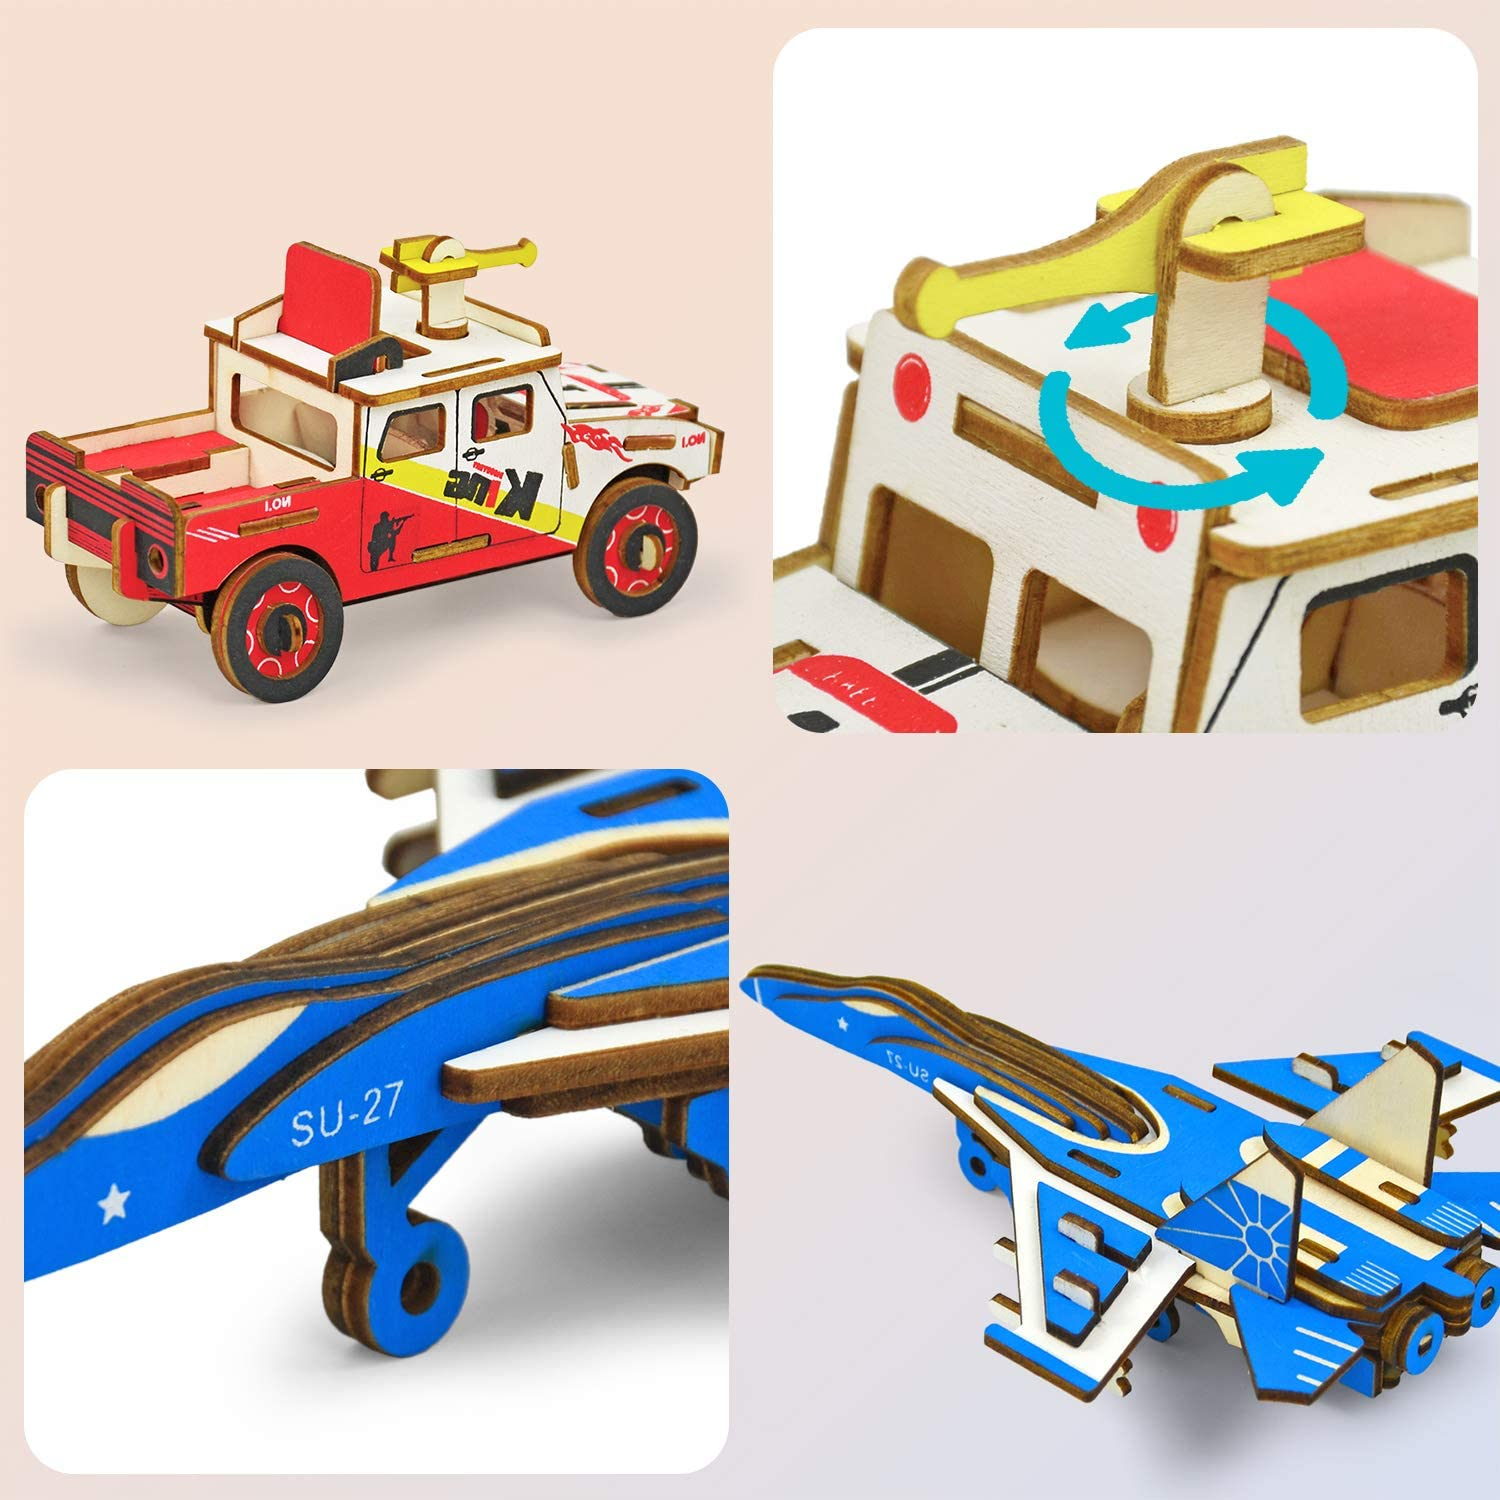 3D Puzzles for Kids Ages 8-10 Years Old Car 44Pcs DIY Craft Set Gifts Fighter 22PCs Simple Mini Wooden Puzzles Set for Boys